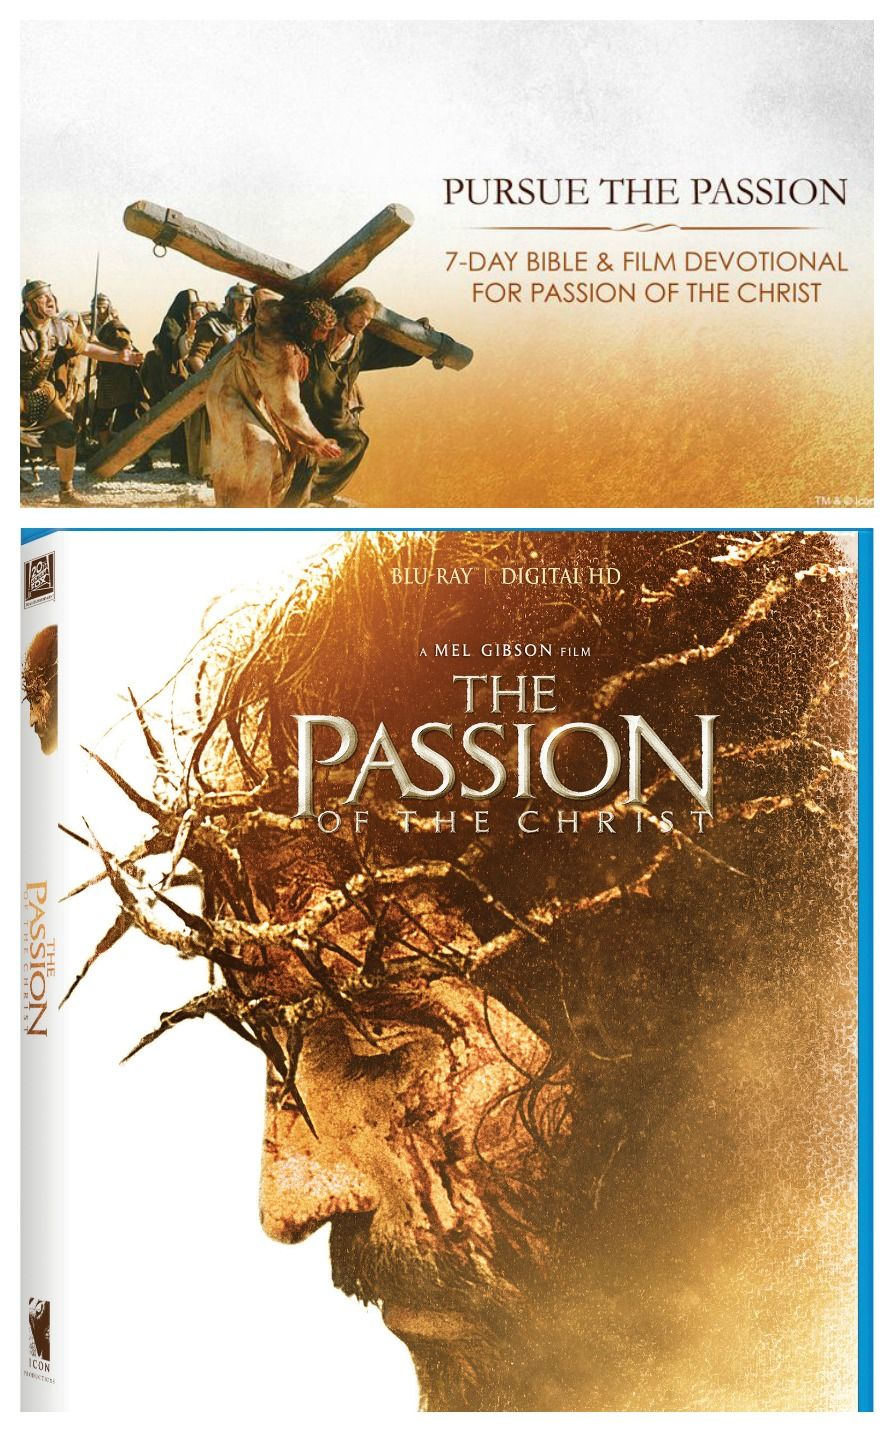 Pursue The Passion with a 7-day study that enables you to reflect on your own life through #ThePassionOfTheChrist film and scripture. #PursuethePassion #Easter2017